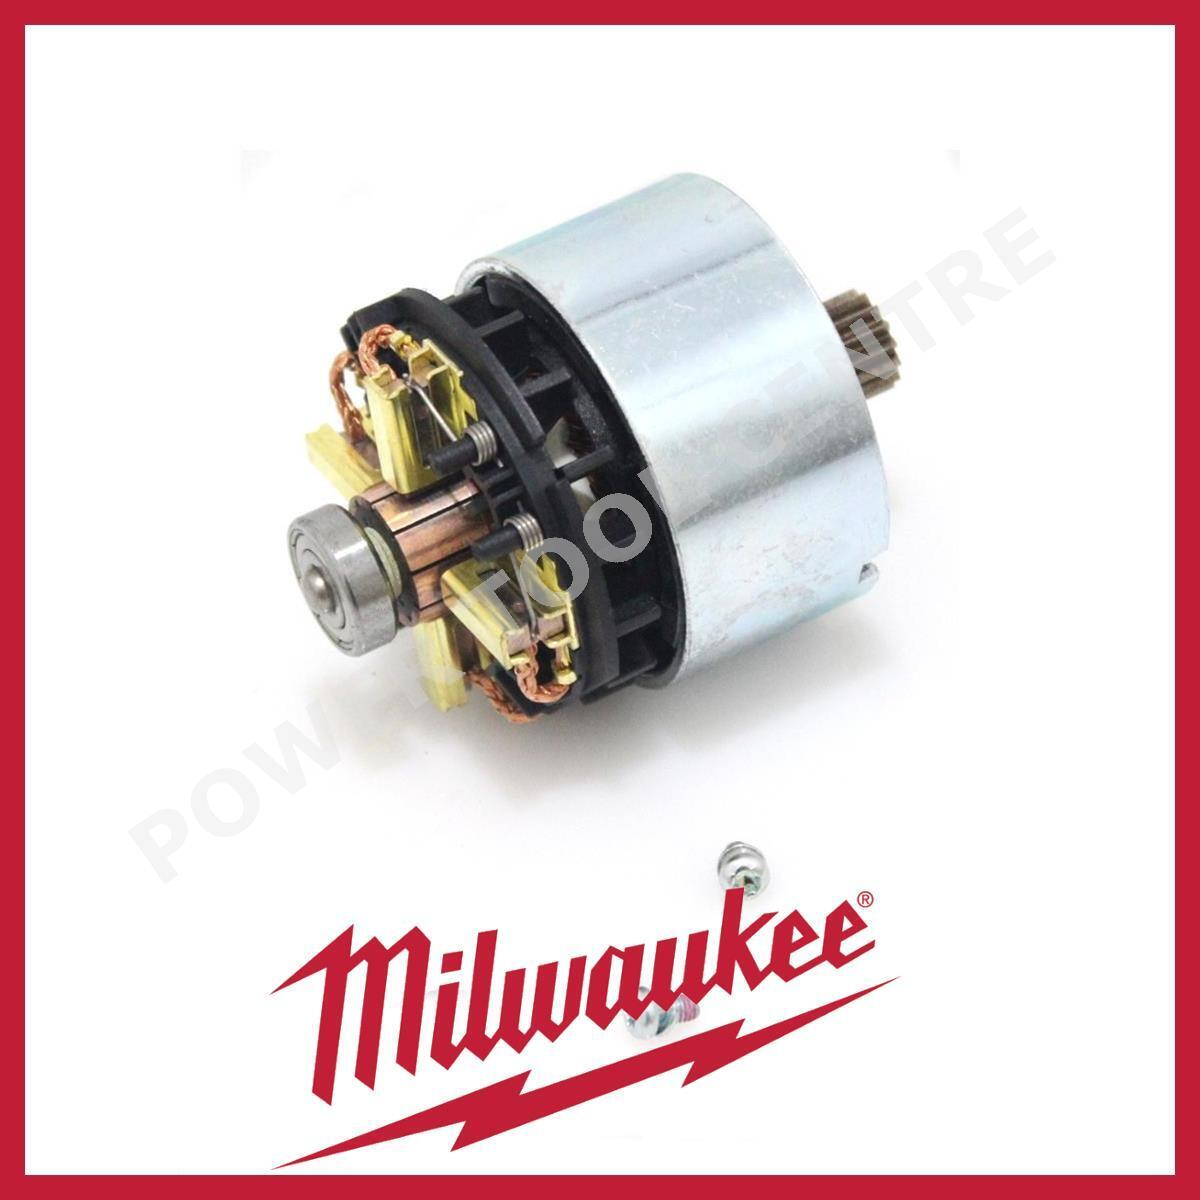 Milwaukee Replacement 18 Volt Motor Assembly Spare Part Cordless Disc Grinder 115 Mm Hitachi G 18dl 1 Of 2free Shipping